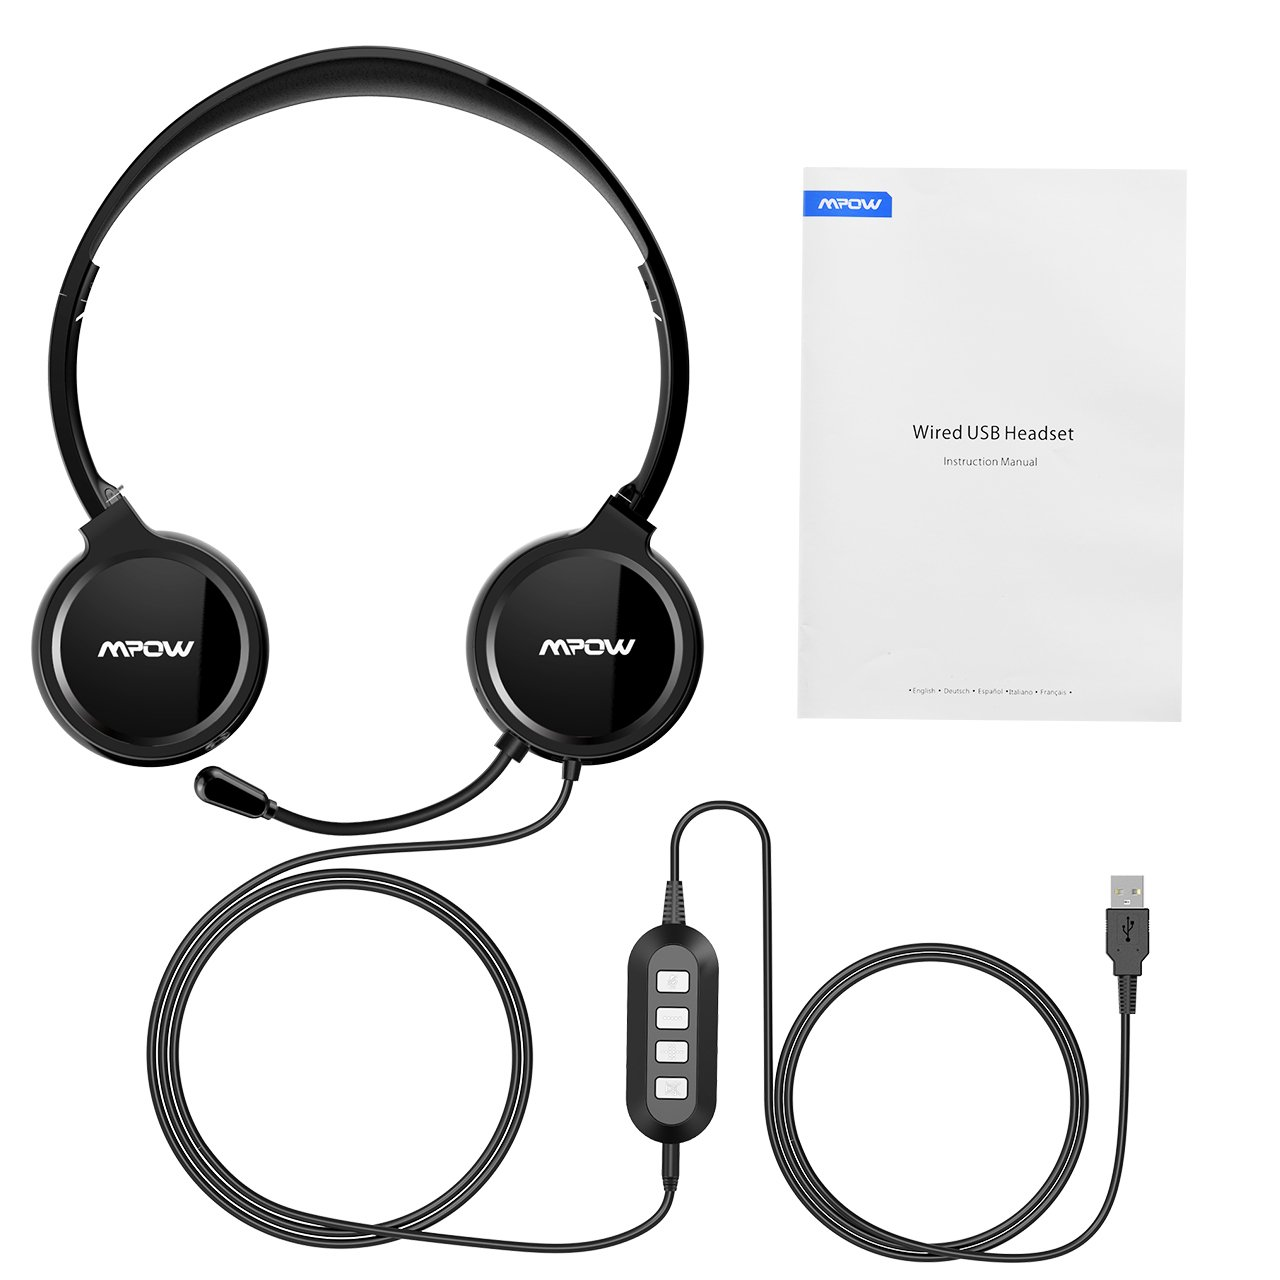 MPOW USB Wired headphone